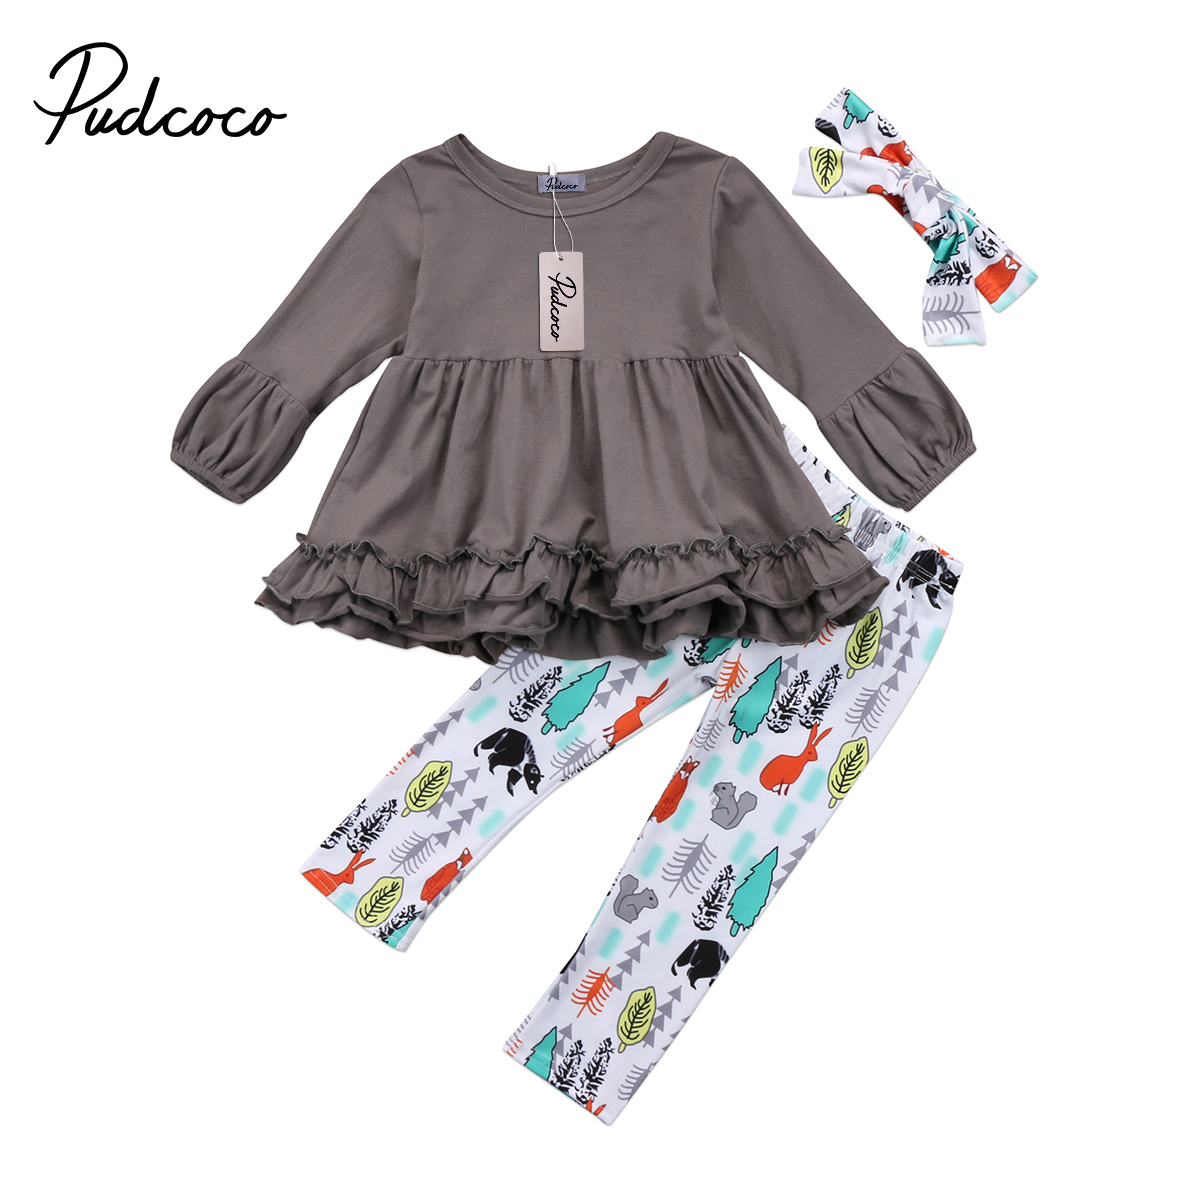 Printed pants Outfits 100/% Cotton Kids Baby Girls lovely Cartoon hooded coat